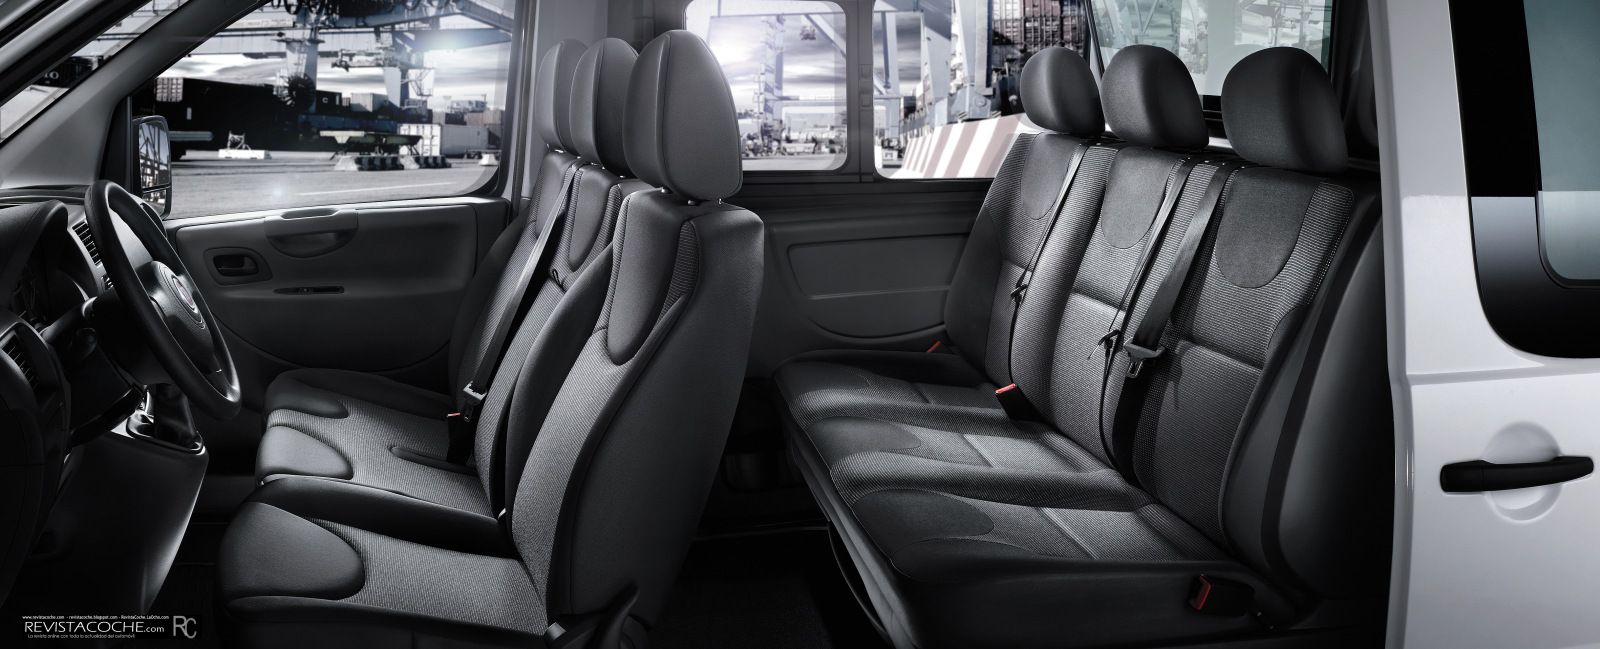 revista coche llega el nuevo fiat scudo 2014. Black Bedroom Furniture Sets. Home Design Ideas